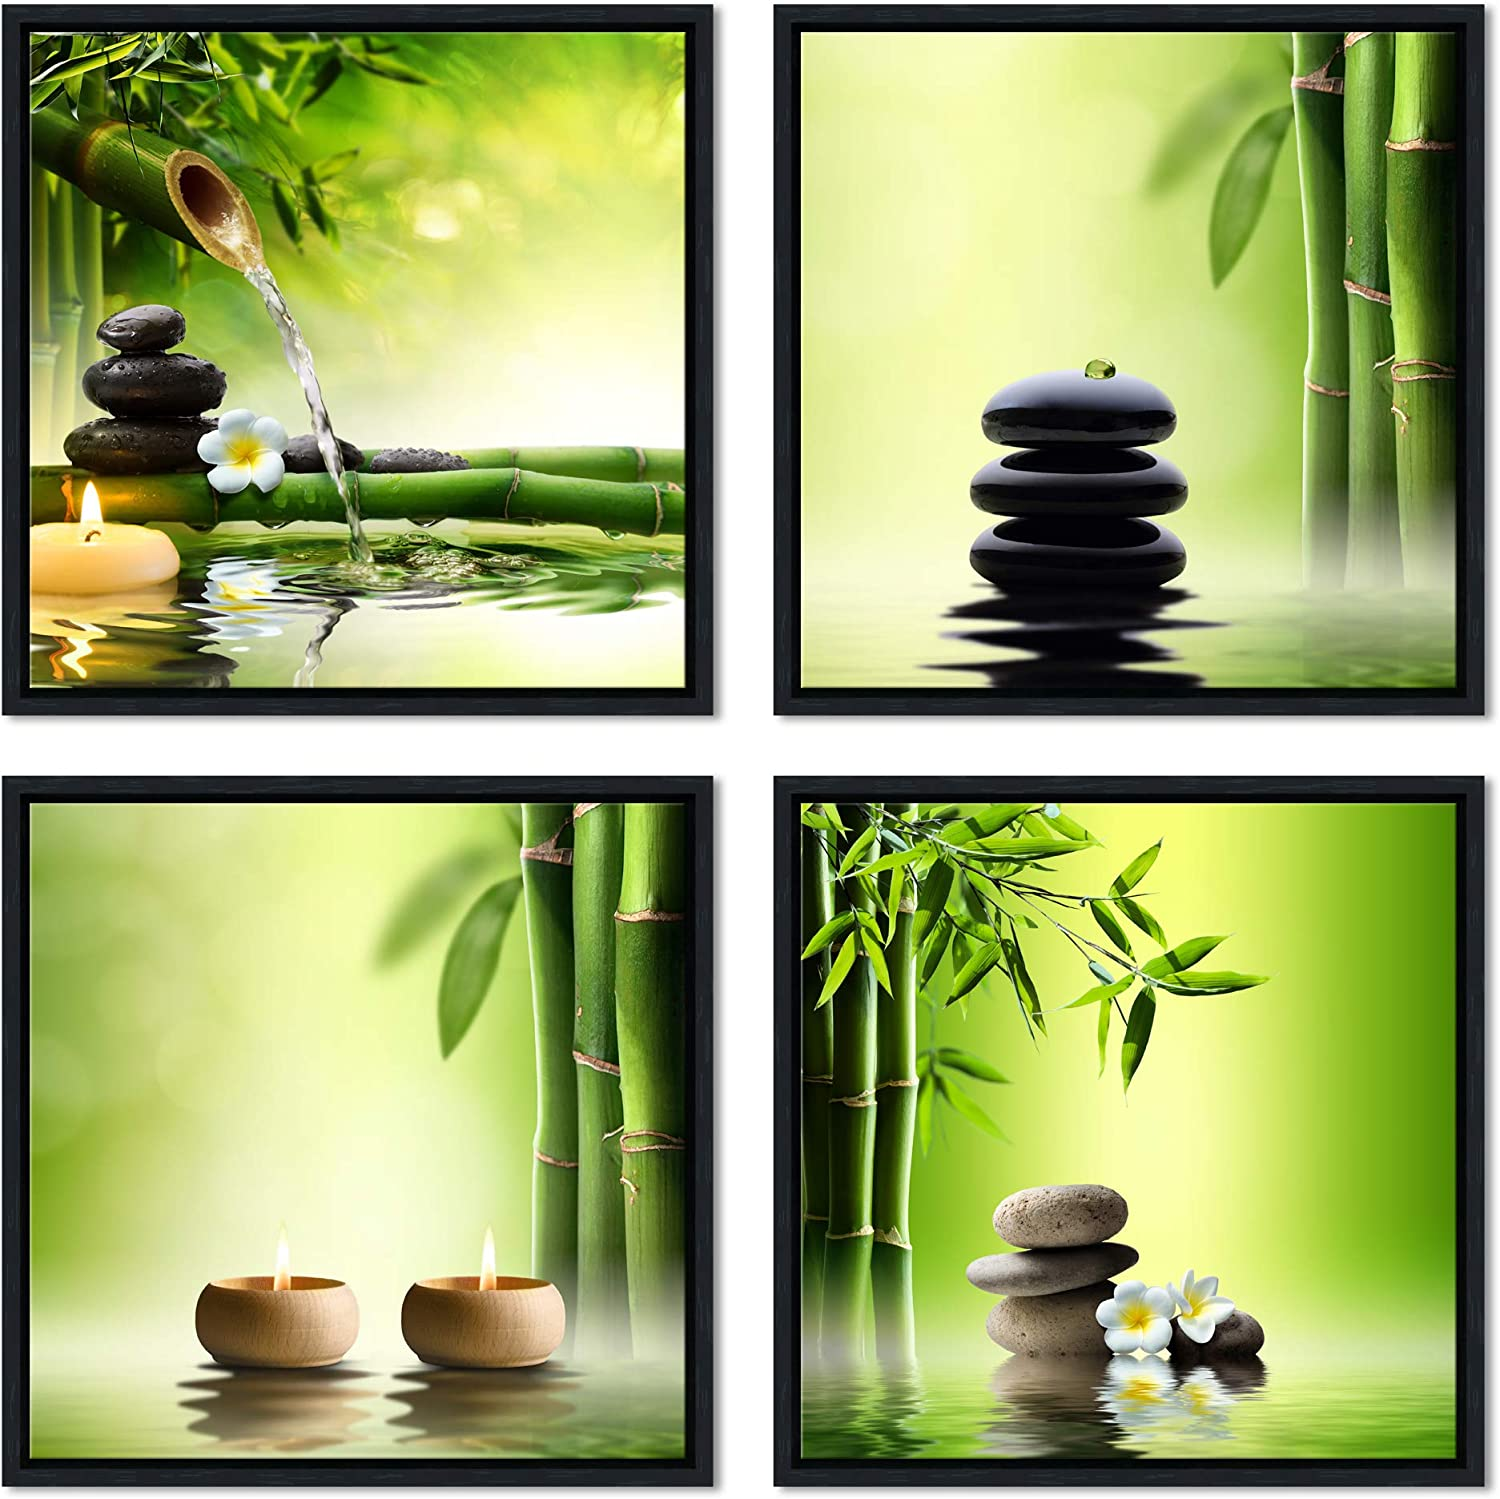 Pyradecor Modern 4 Panels Framed Contemporary Zen Giclee Canvas Prints Perfect Bamboo Green Pictures Paintings on Canvas Wall Art for Home Office Decorations Living Room Bedroon